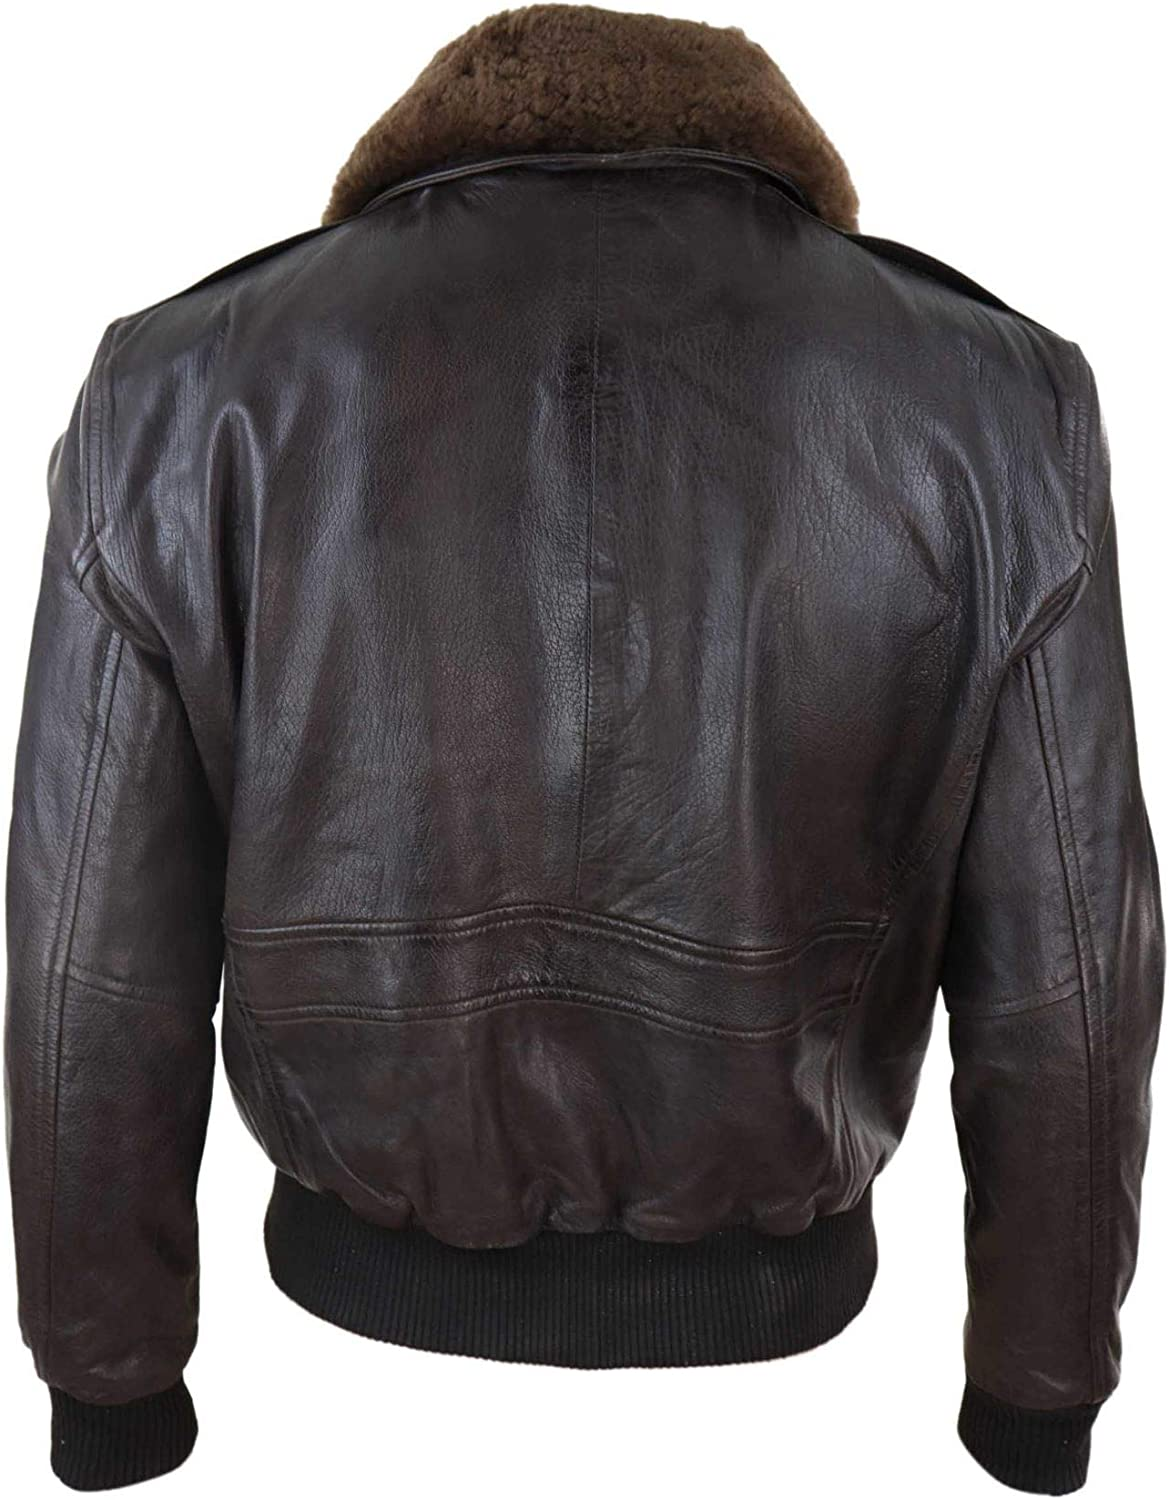 Mens Brown Tweed Casual Bomber Jacket with real leather sleeves